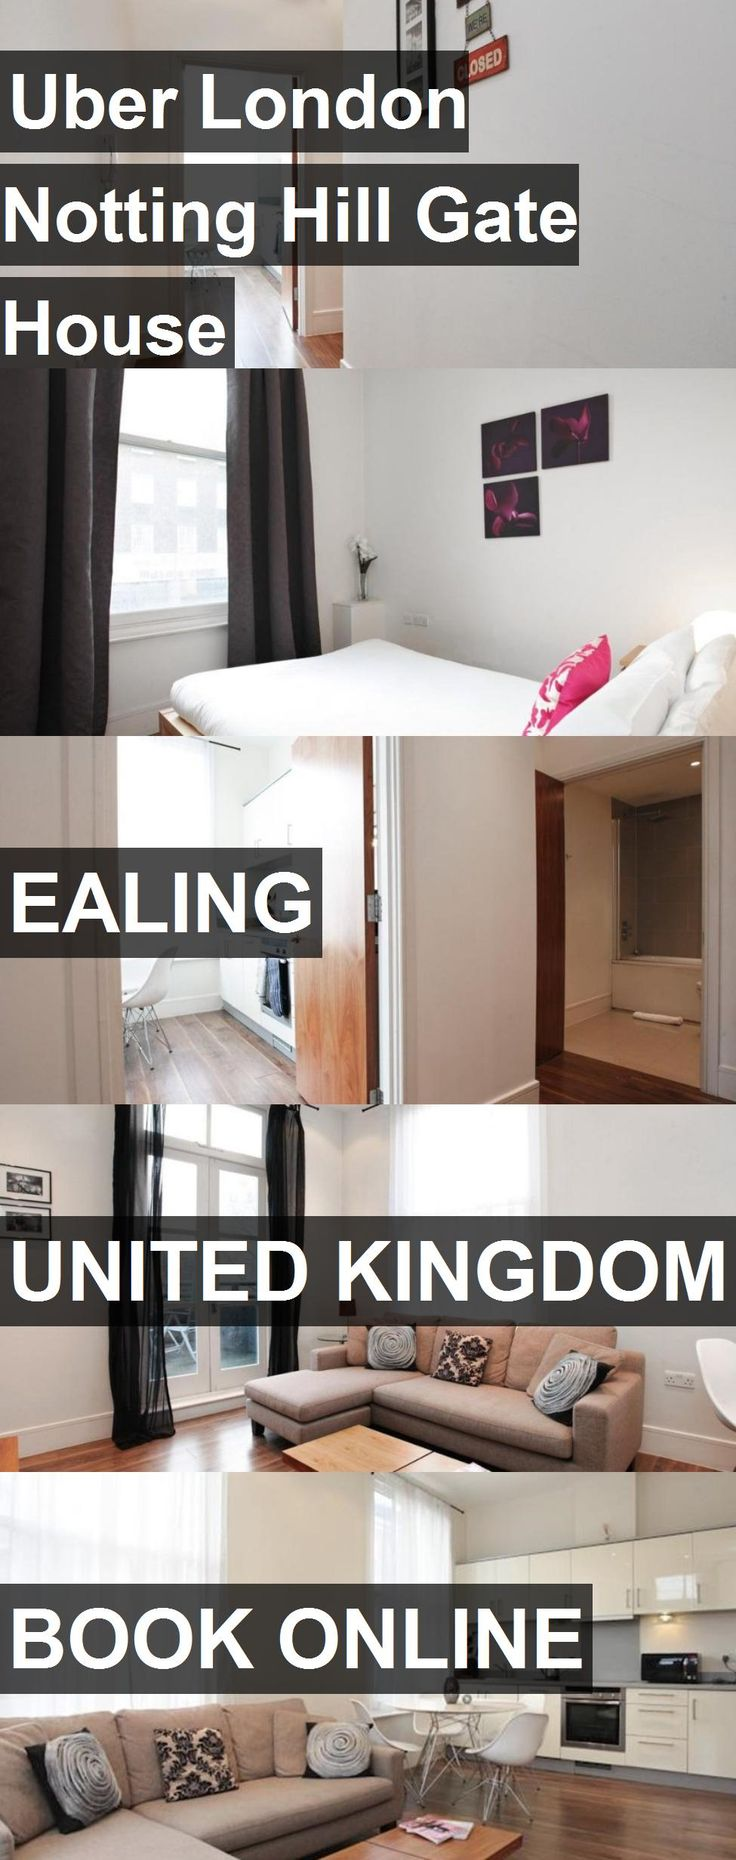 Hotel Uber London Notting Hill Gate House in Ealing, United Kingdom. For more information, photos, reviews and best prices please follow the link. #UnitedKingdom #Ealing #travel #vacation #hotel